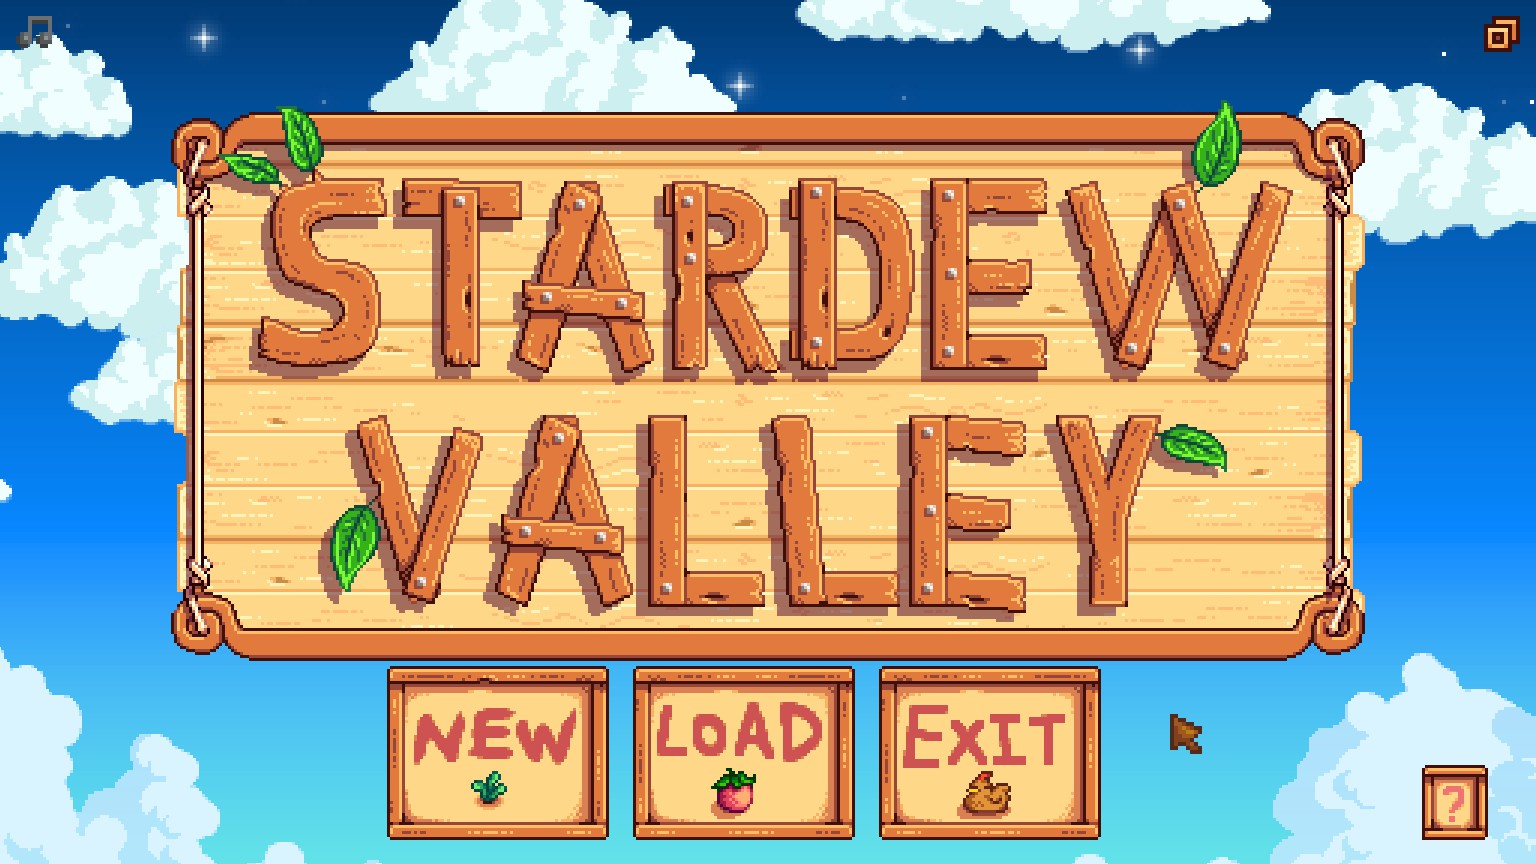 Stardew Valley by ConcernedApe